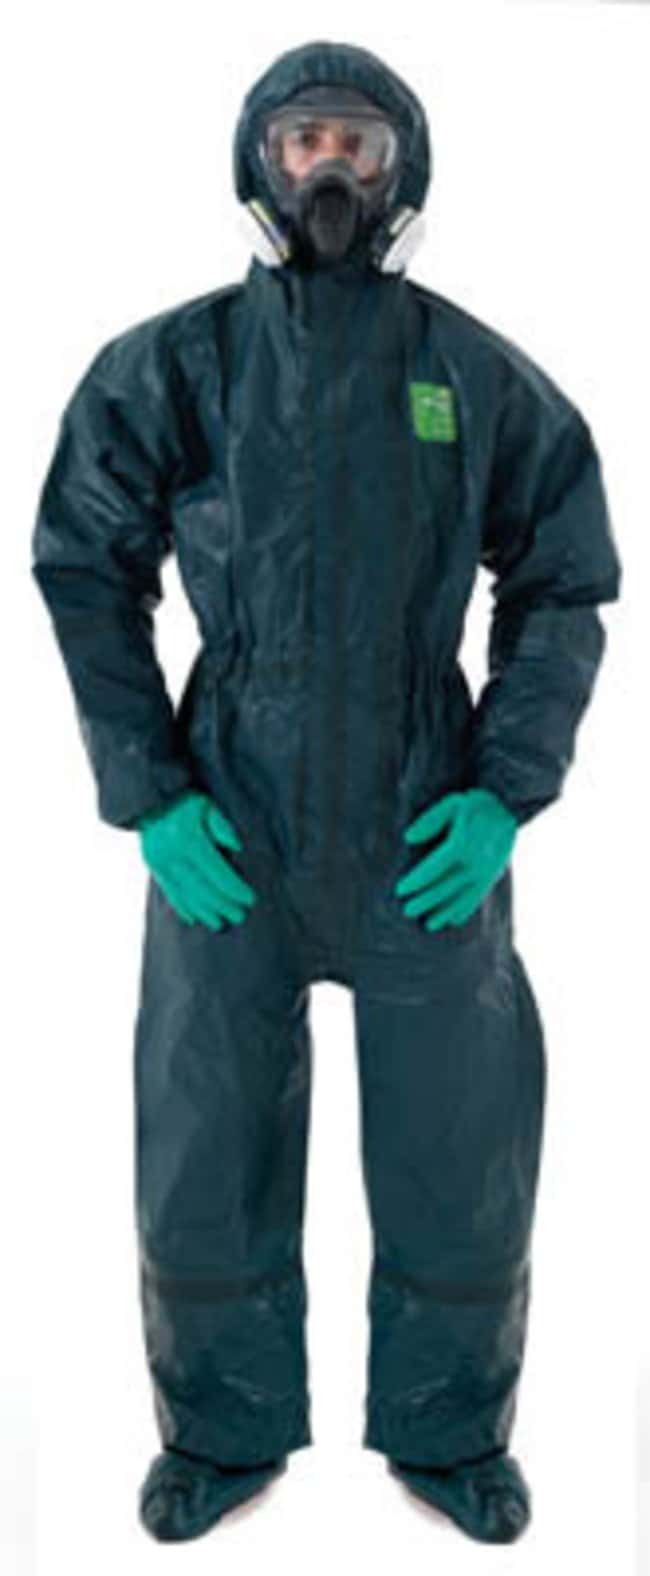 Ansell Edmont™ Microchem™ 4000 Coveralls with Hood and Integrated Socks Small Ansell Edmont™ Microchem™ 4000 Coveralls with Hood and Integrated Socks